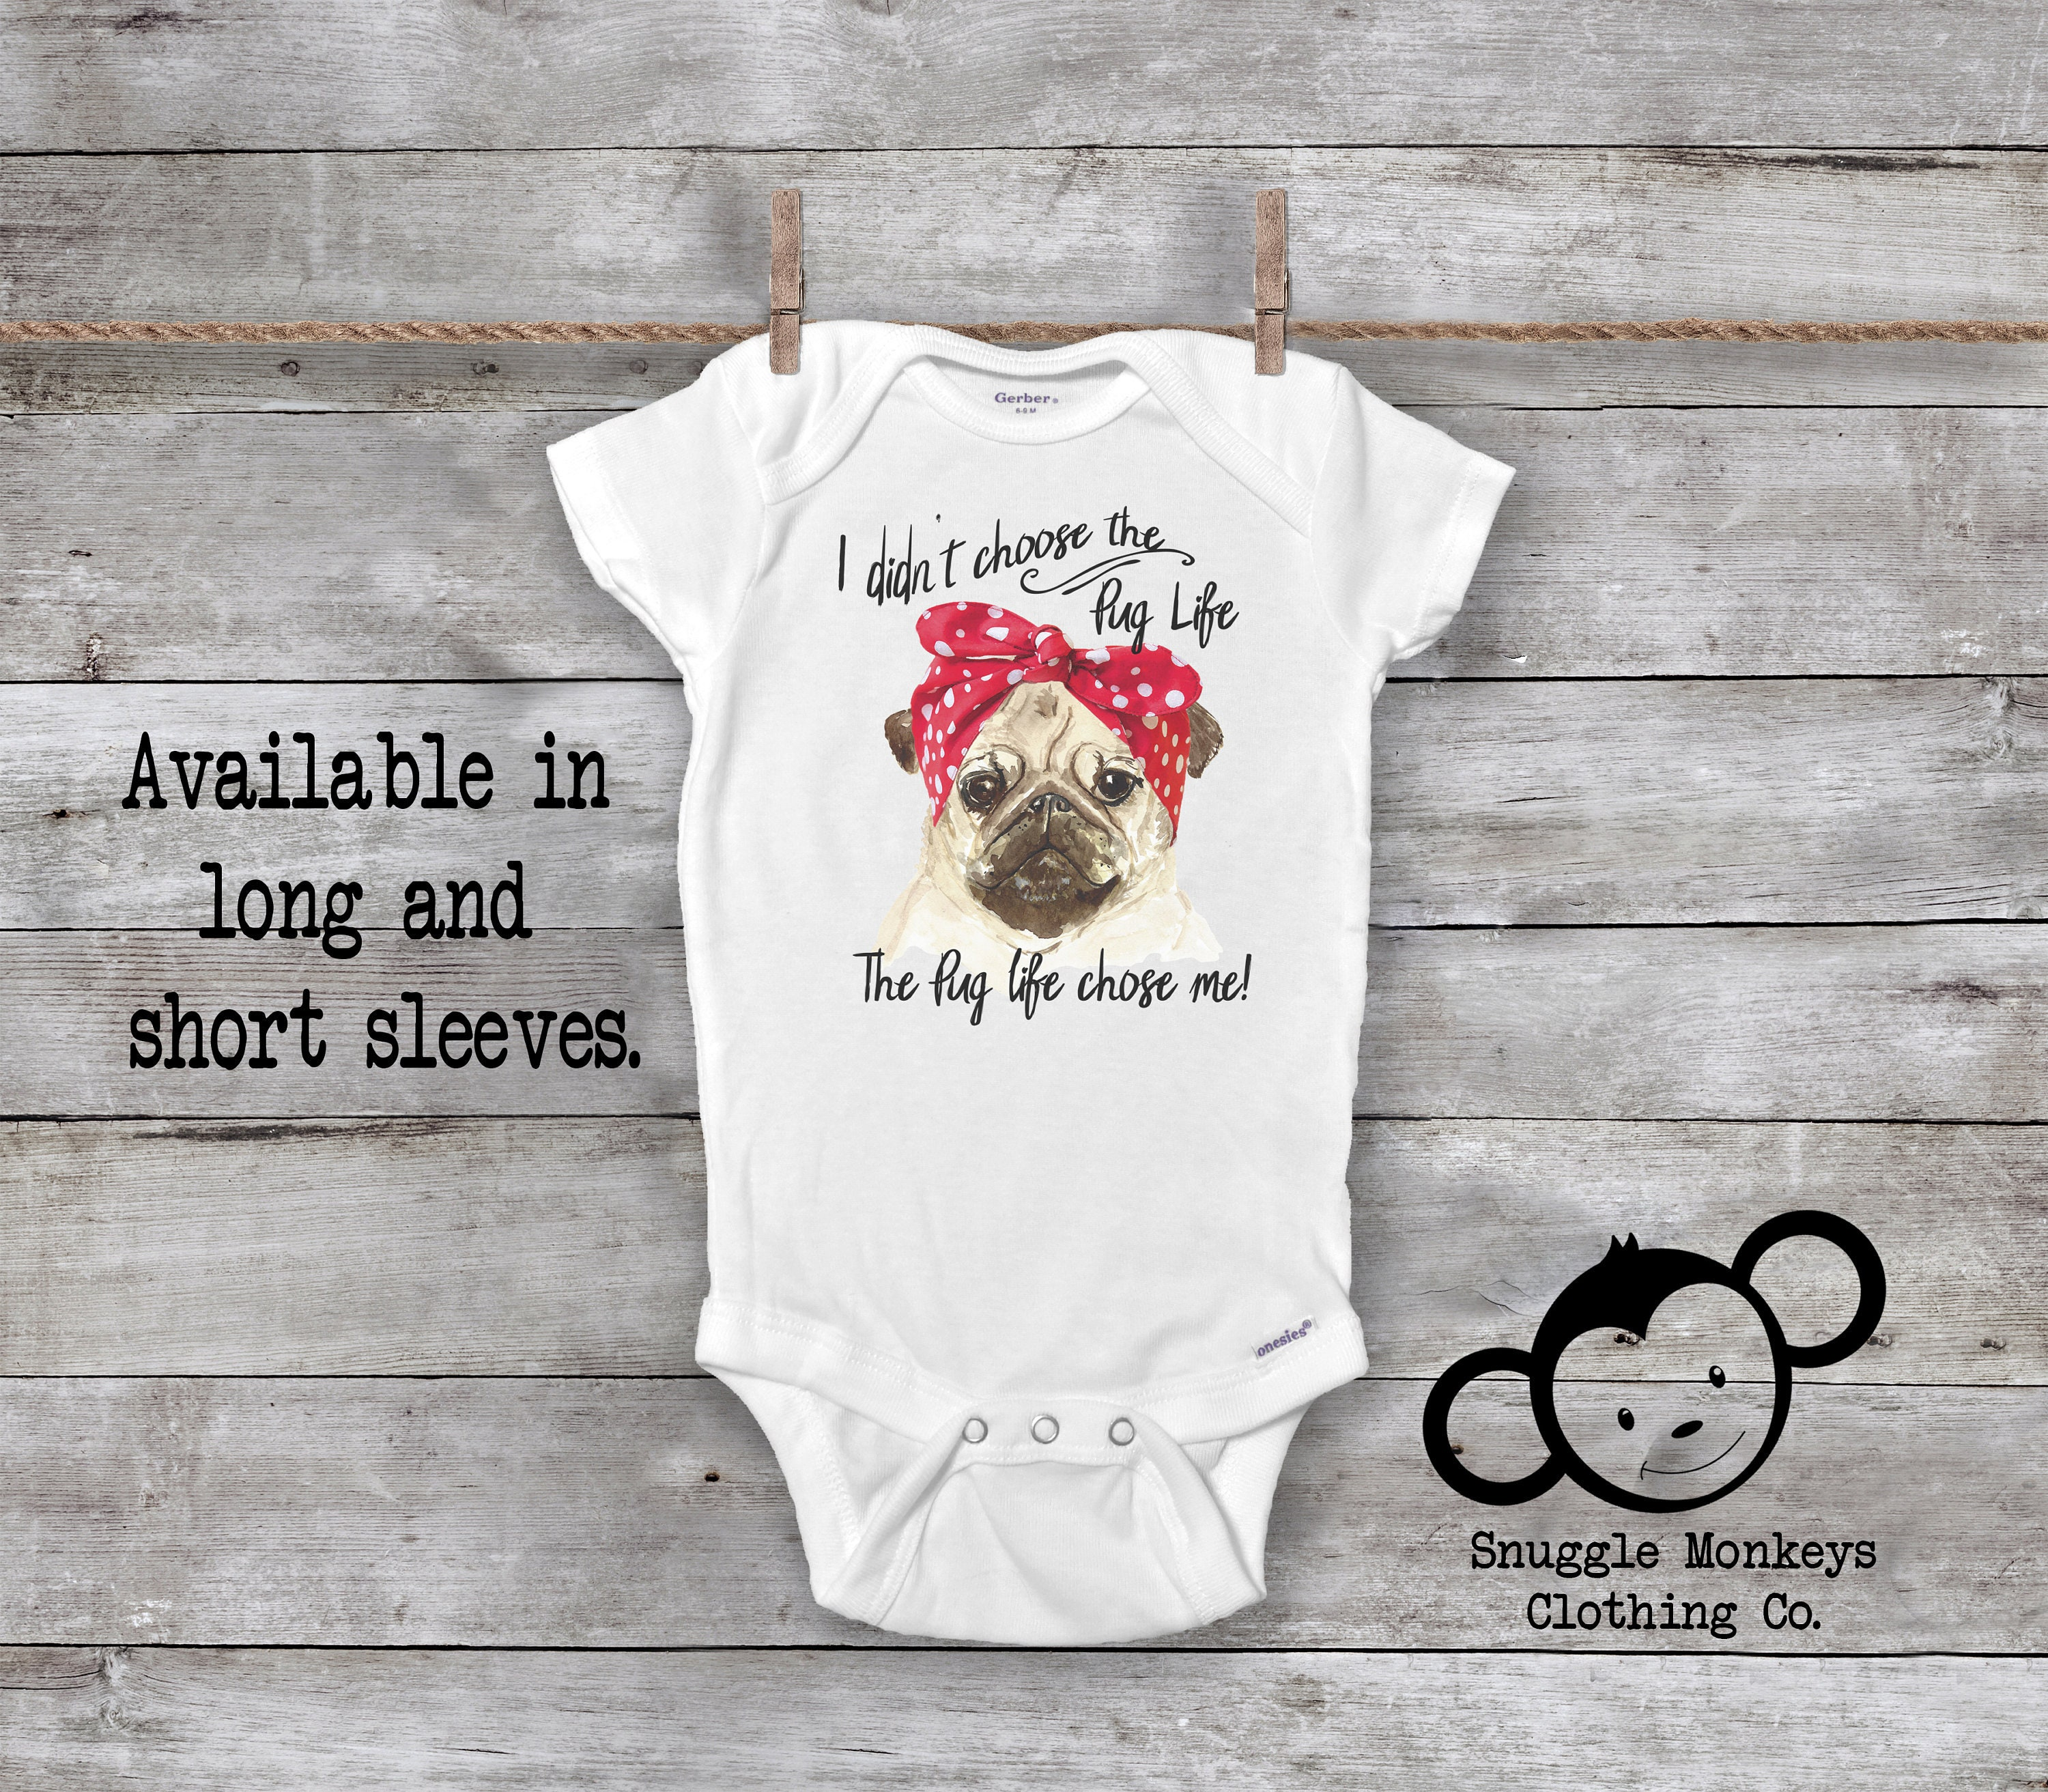 0799fcf03 Pug Life Onesie®, Funny Baby Onesie®, Cute Pug Shirts for Girls, Baby  Shower Gift, Pug Baby Clothes, Pug Baby Outfit, Dog Onesie®